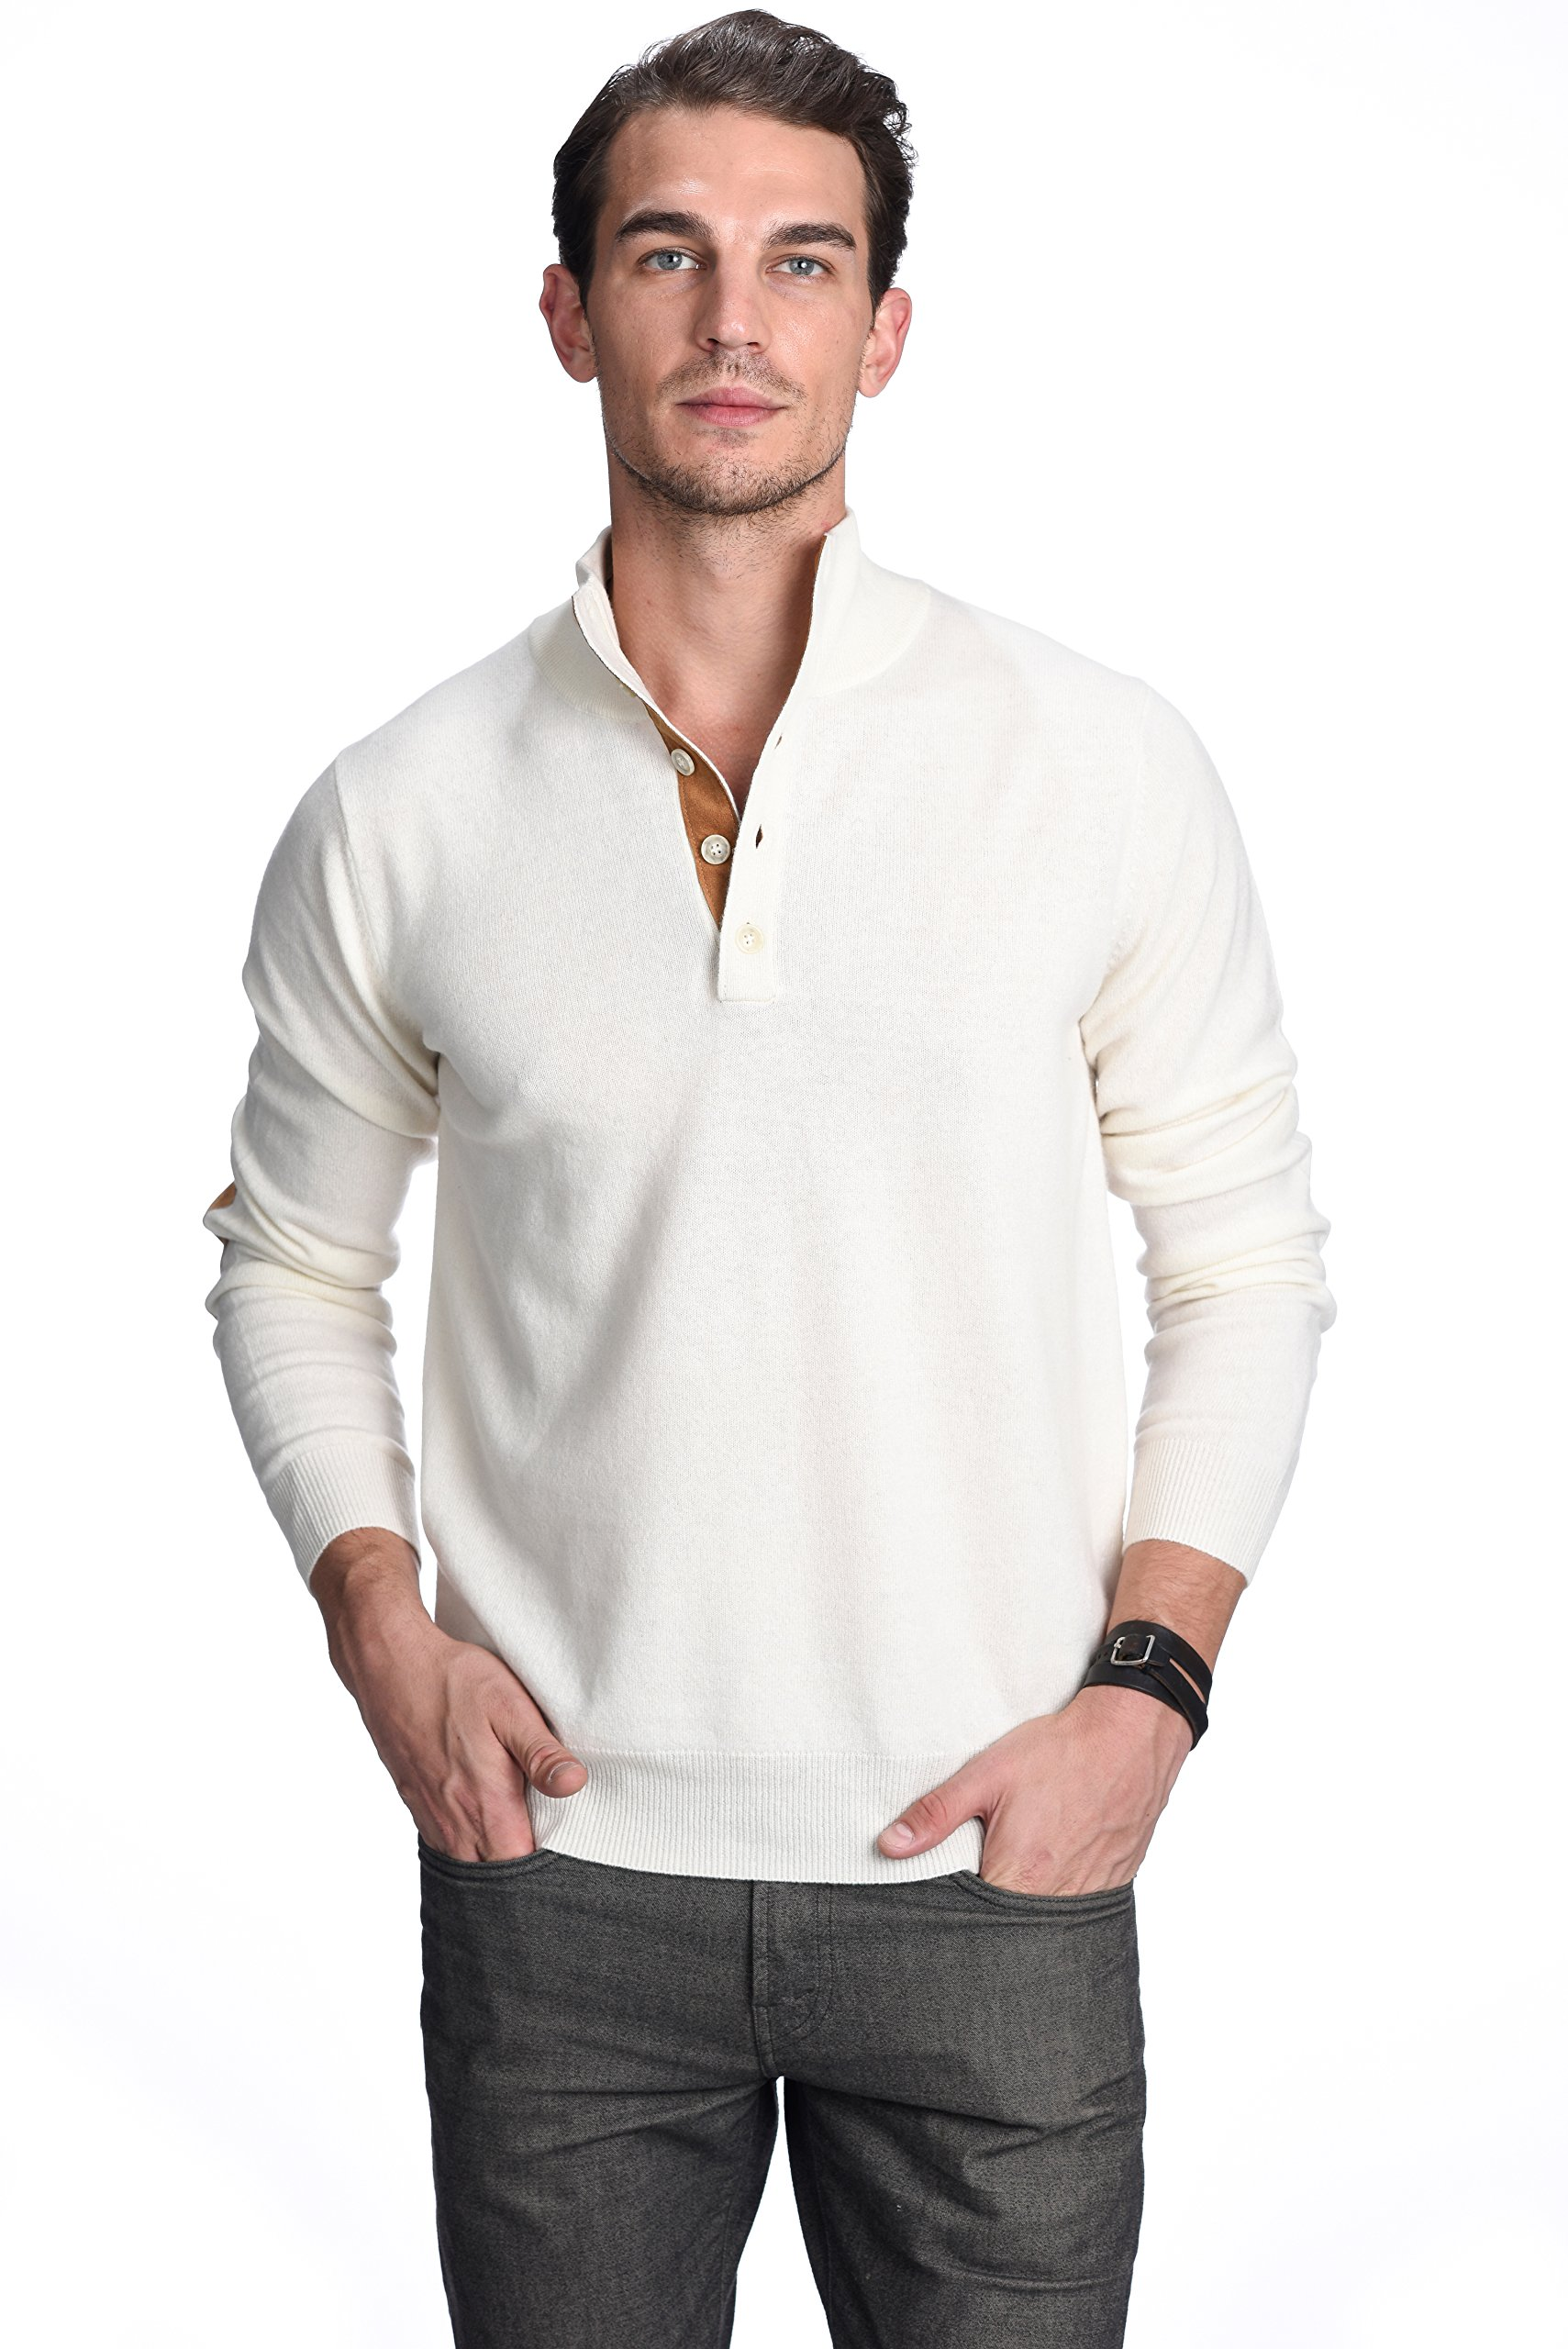 d2d01ae3a92 Get Quotations · State Cashmere Men s 100% Pure Cashmere Button Mock-Neck  Polo Collar Sweater Pullover